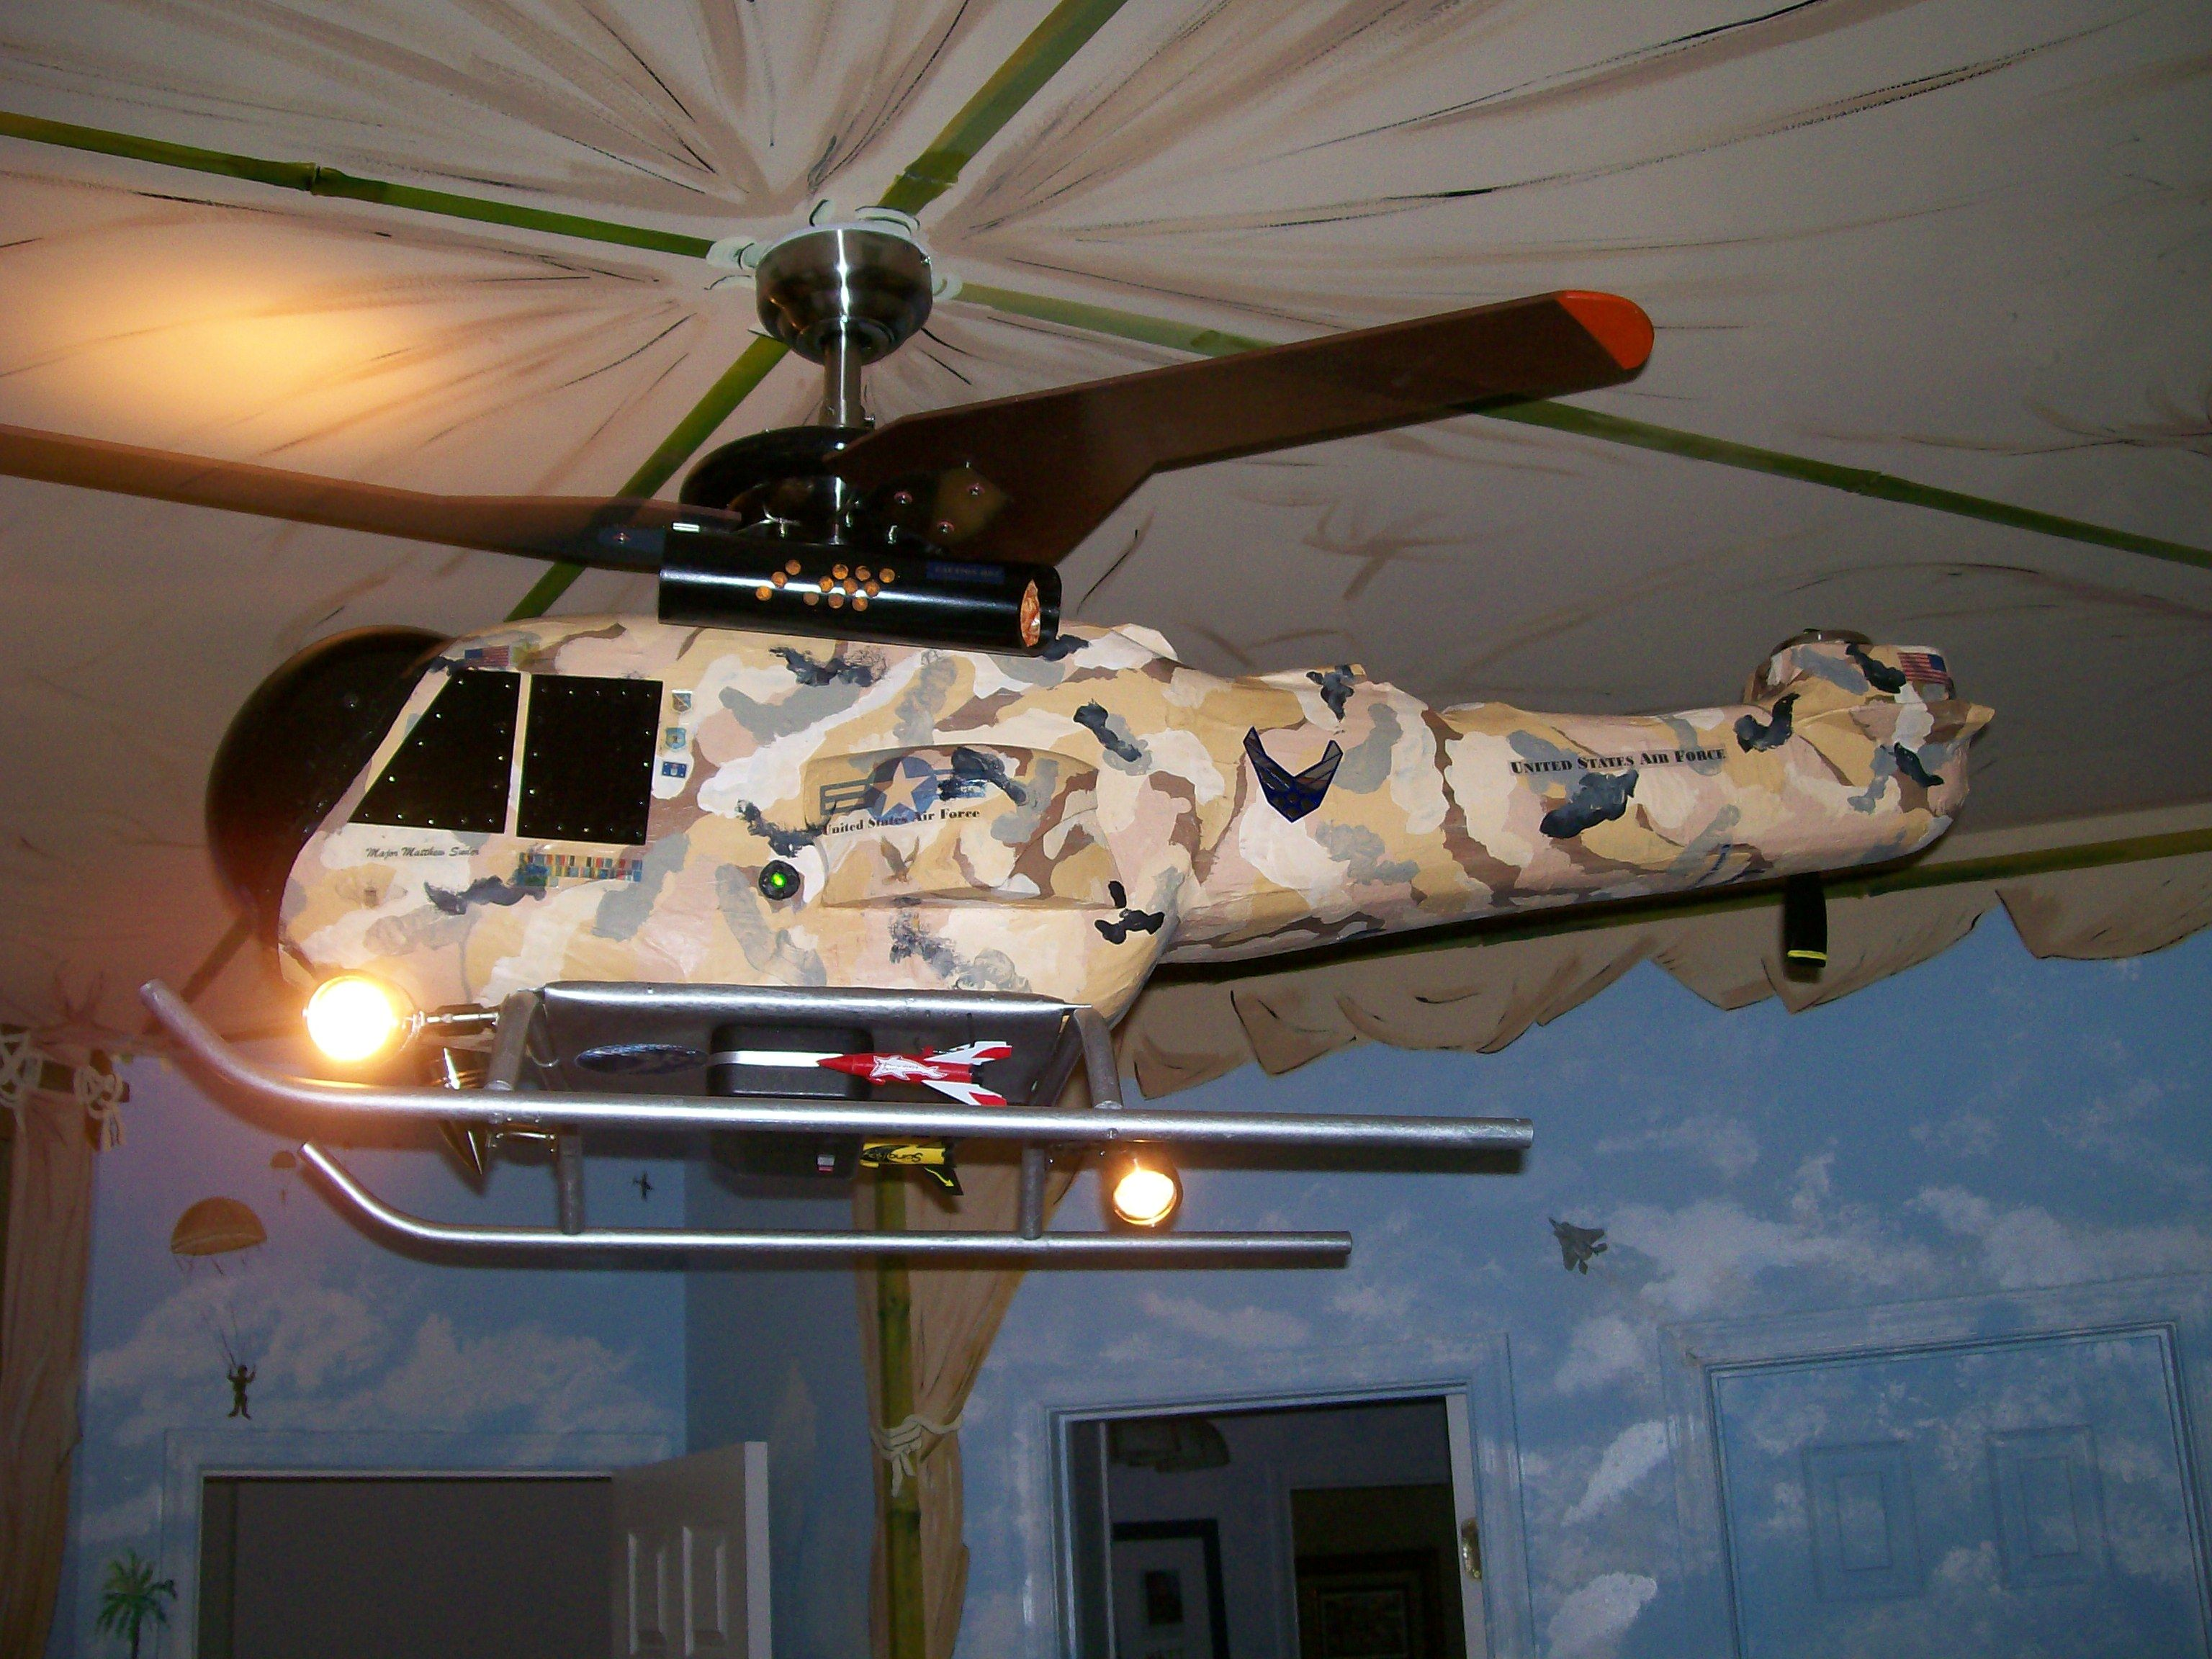 Ceiling Fan Camouflage Helicopter ...the Perfect Fan Light